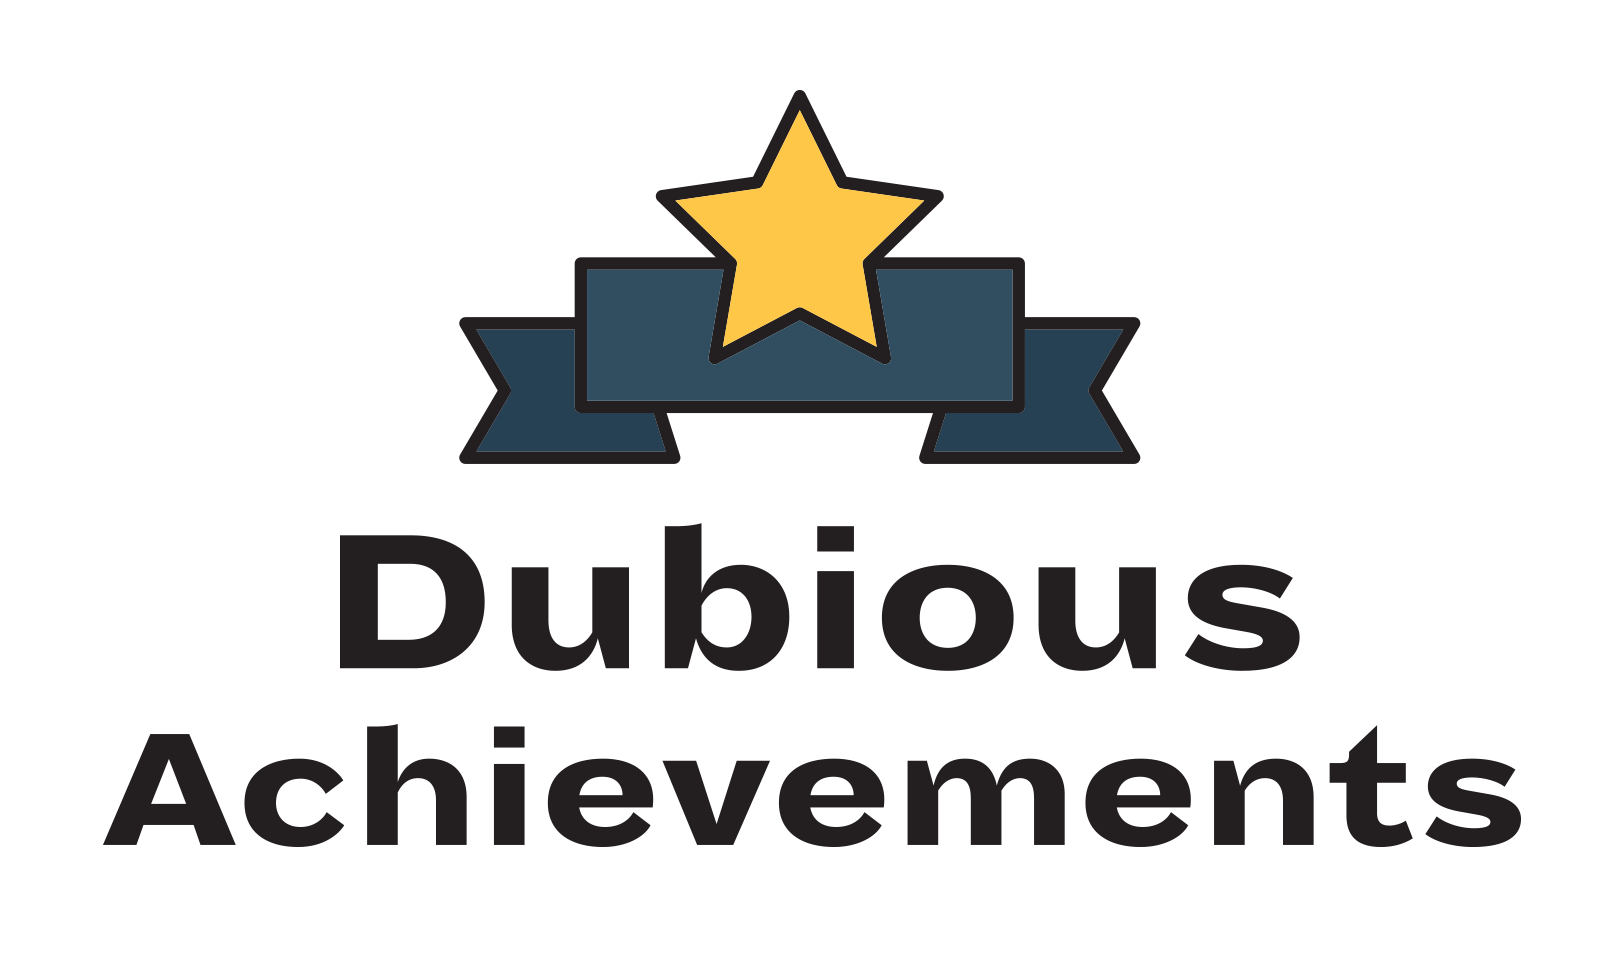 Dubious Achievements 2018: Starring Elon Musk